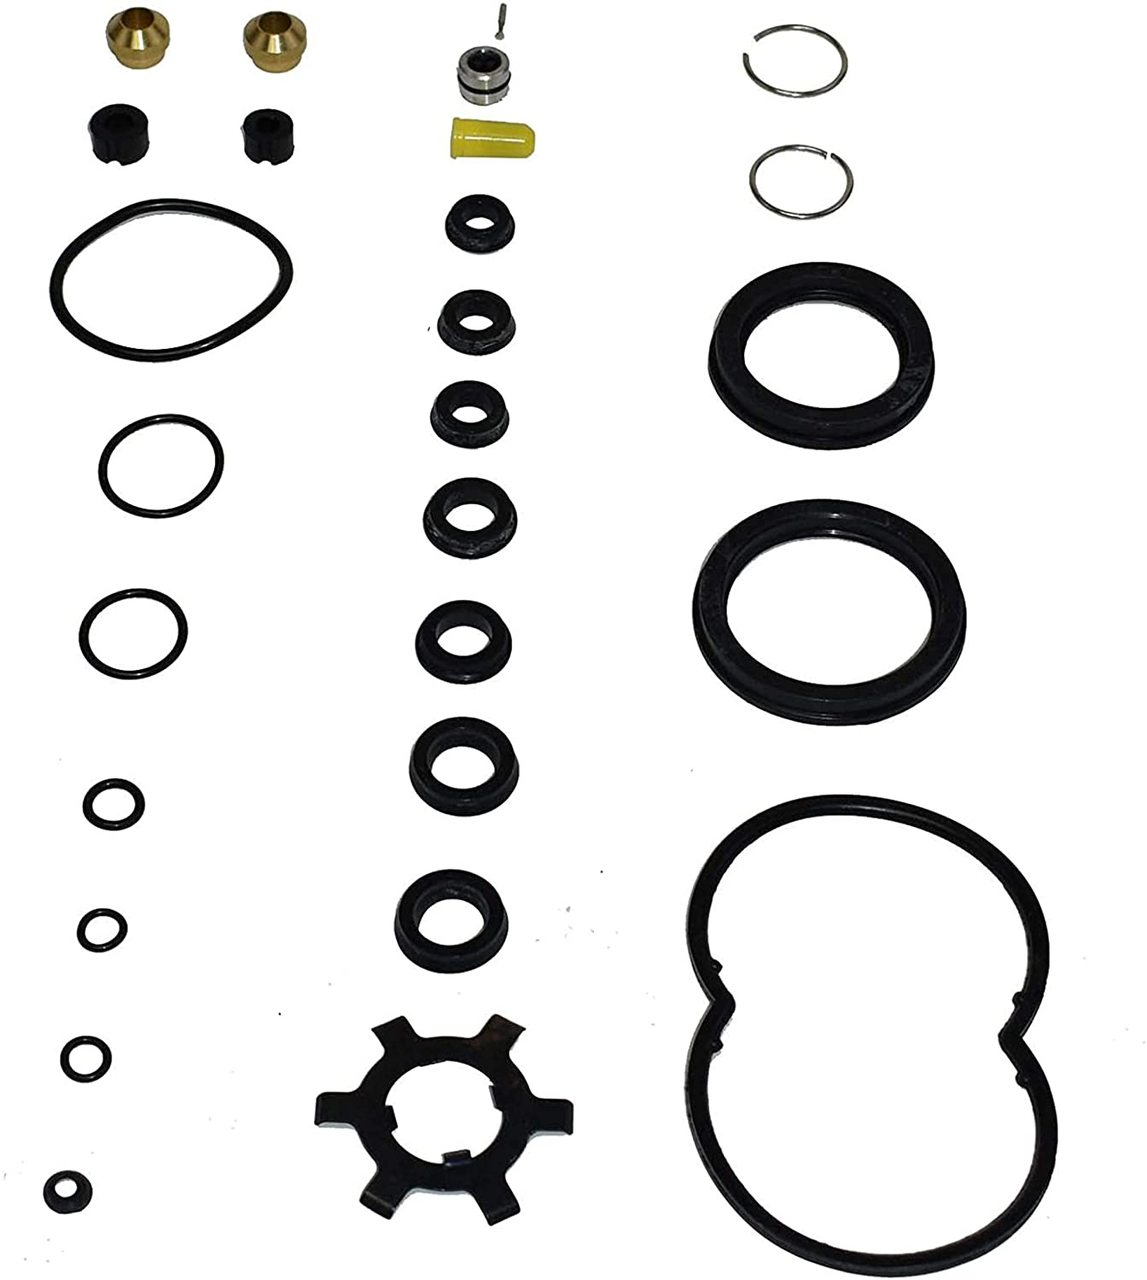 A-Team Performance GM 2771004 Hydro-Boost Seal Repair Kit Exact Duplicate for Brake System — Complete Seal Kit Compatible with Ford GM and Chrysler Hydroboost